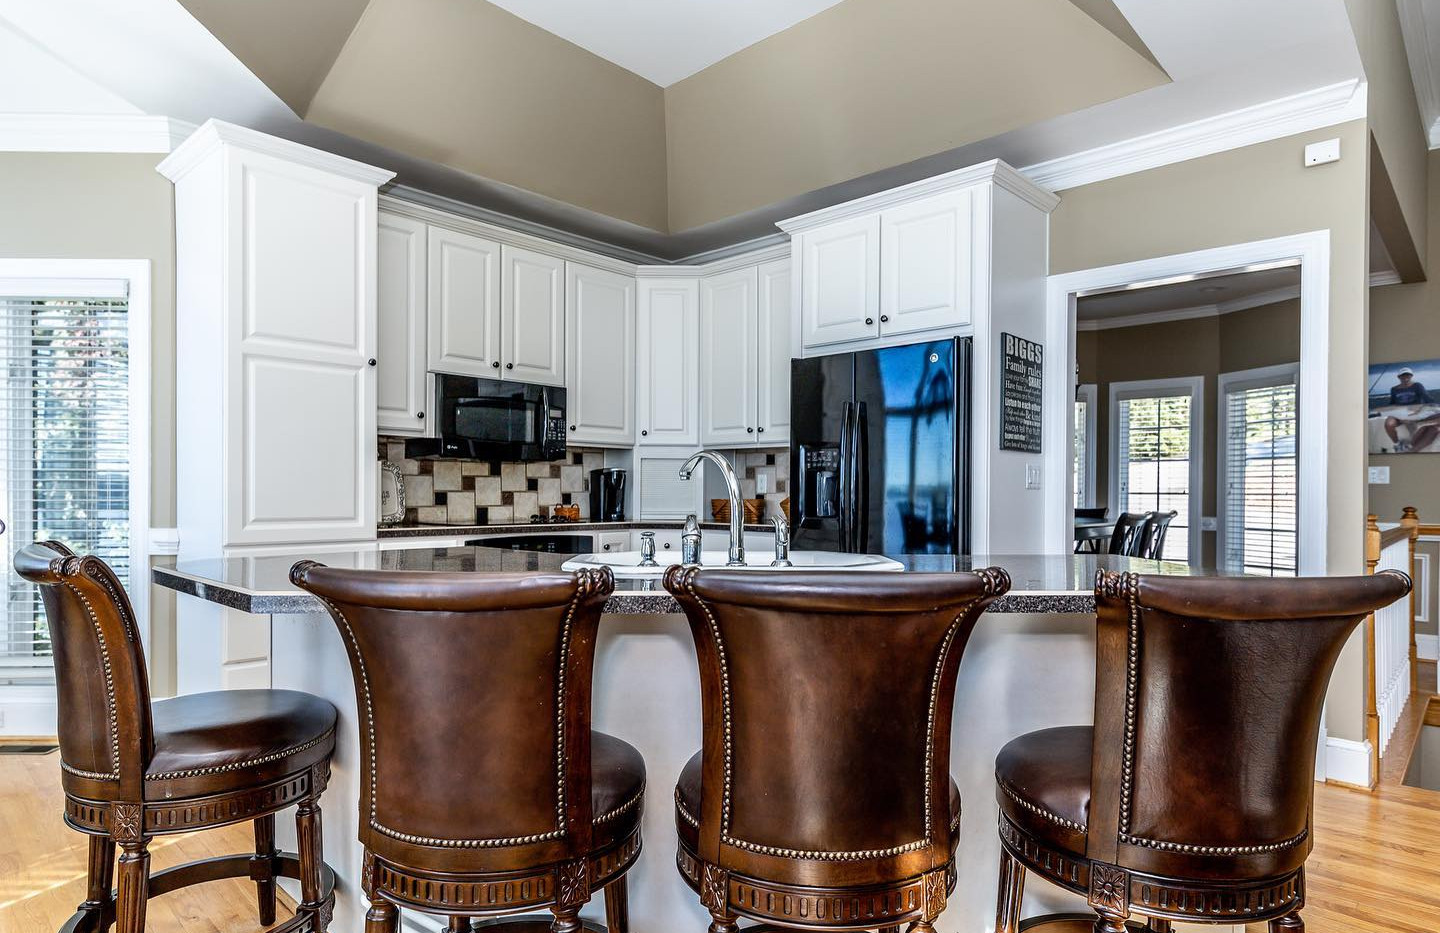 Interior Design Shoots on Lake Gaston